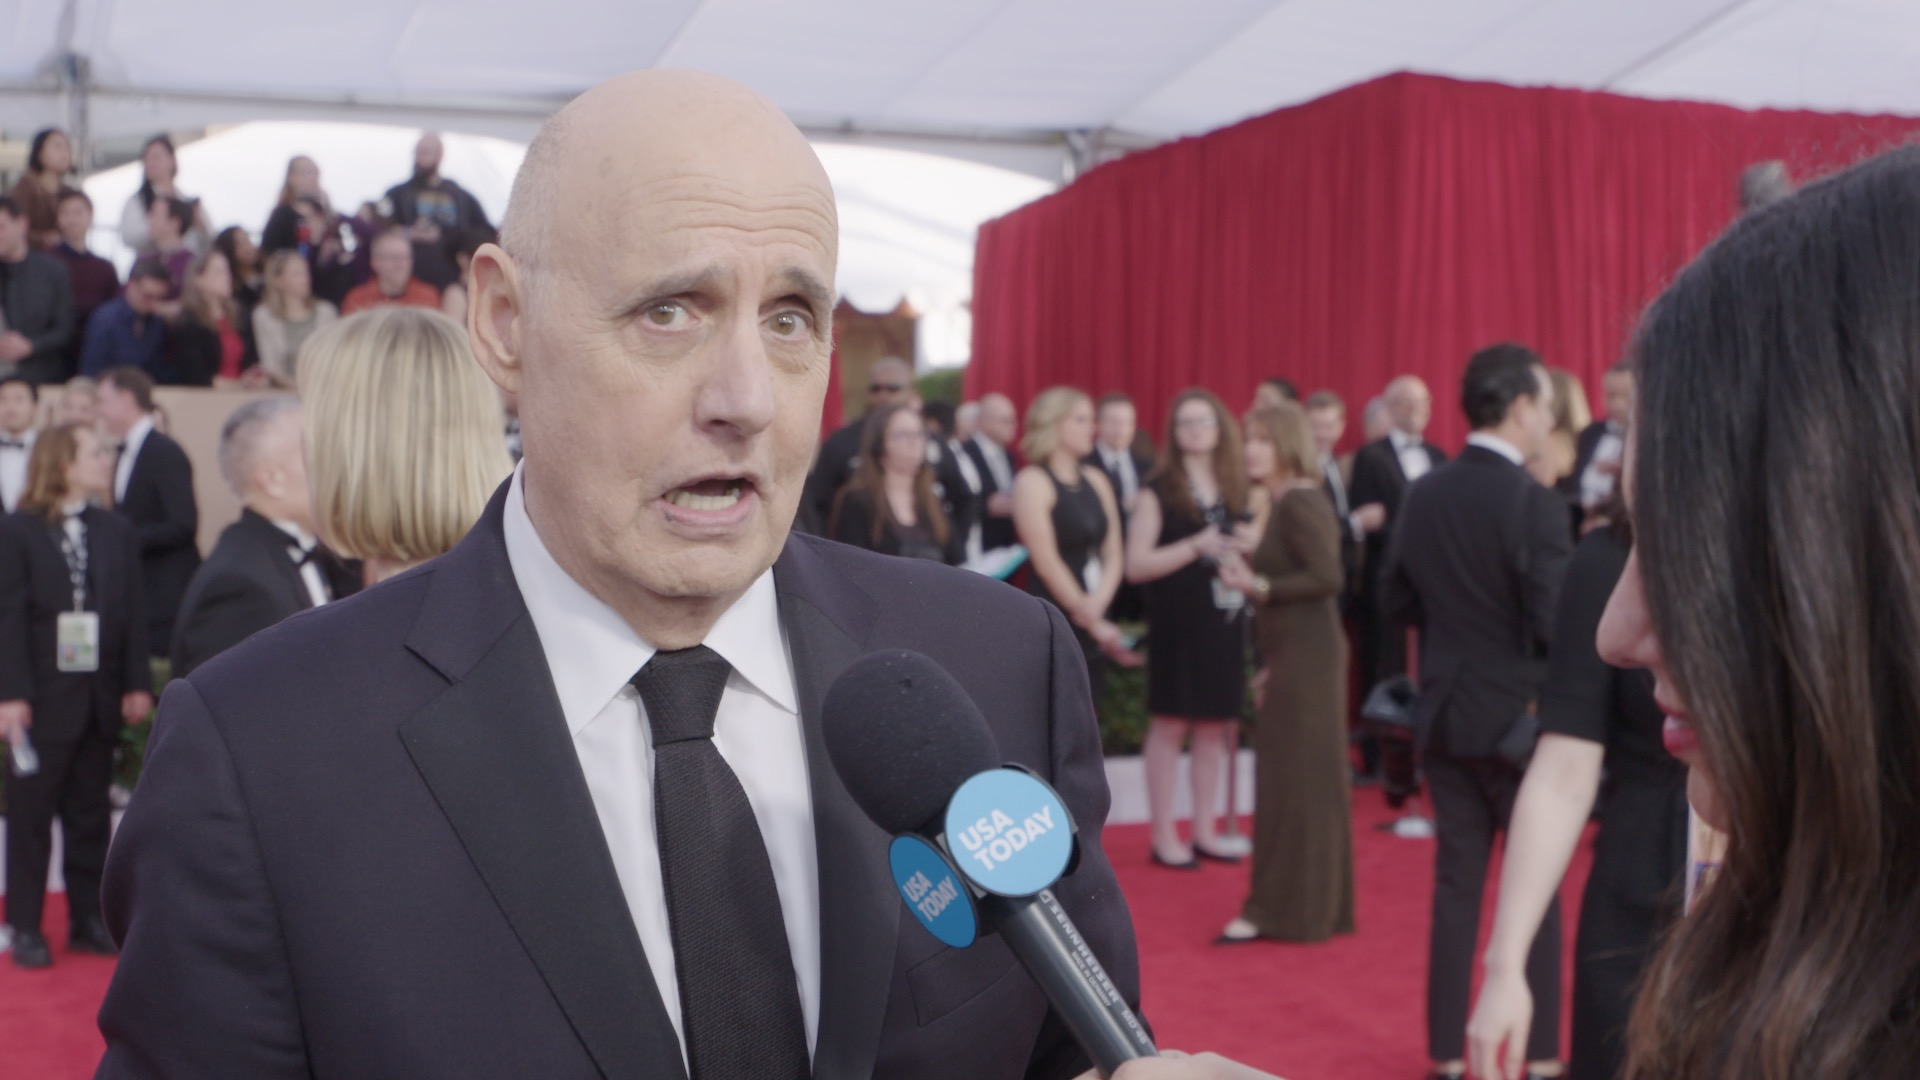 SAG Awards stars give their spin on famous movie lines